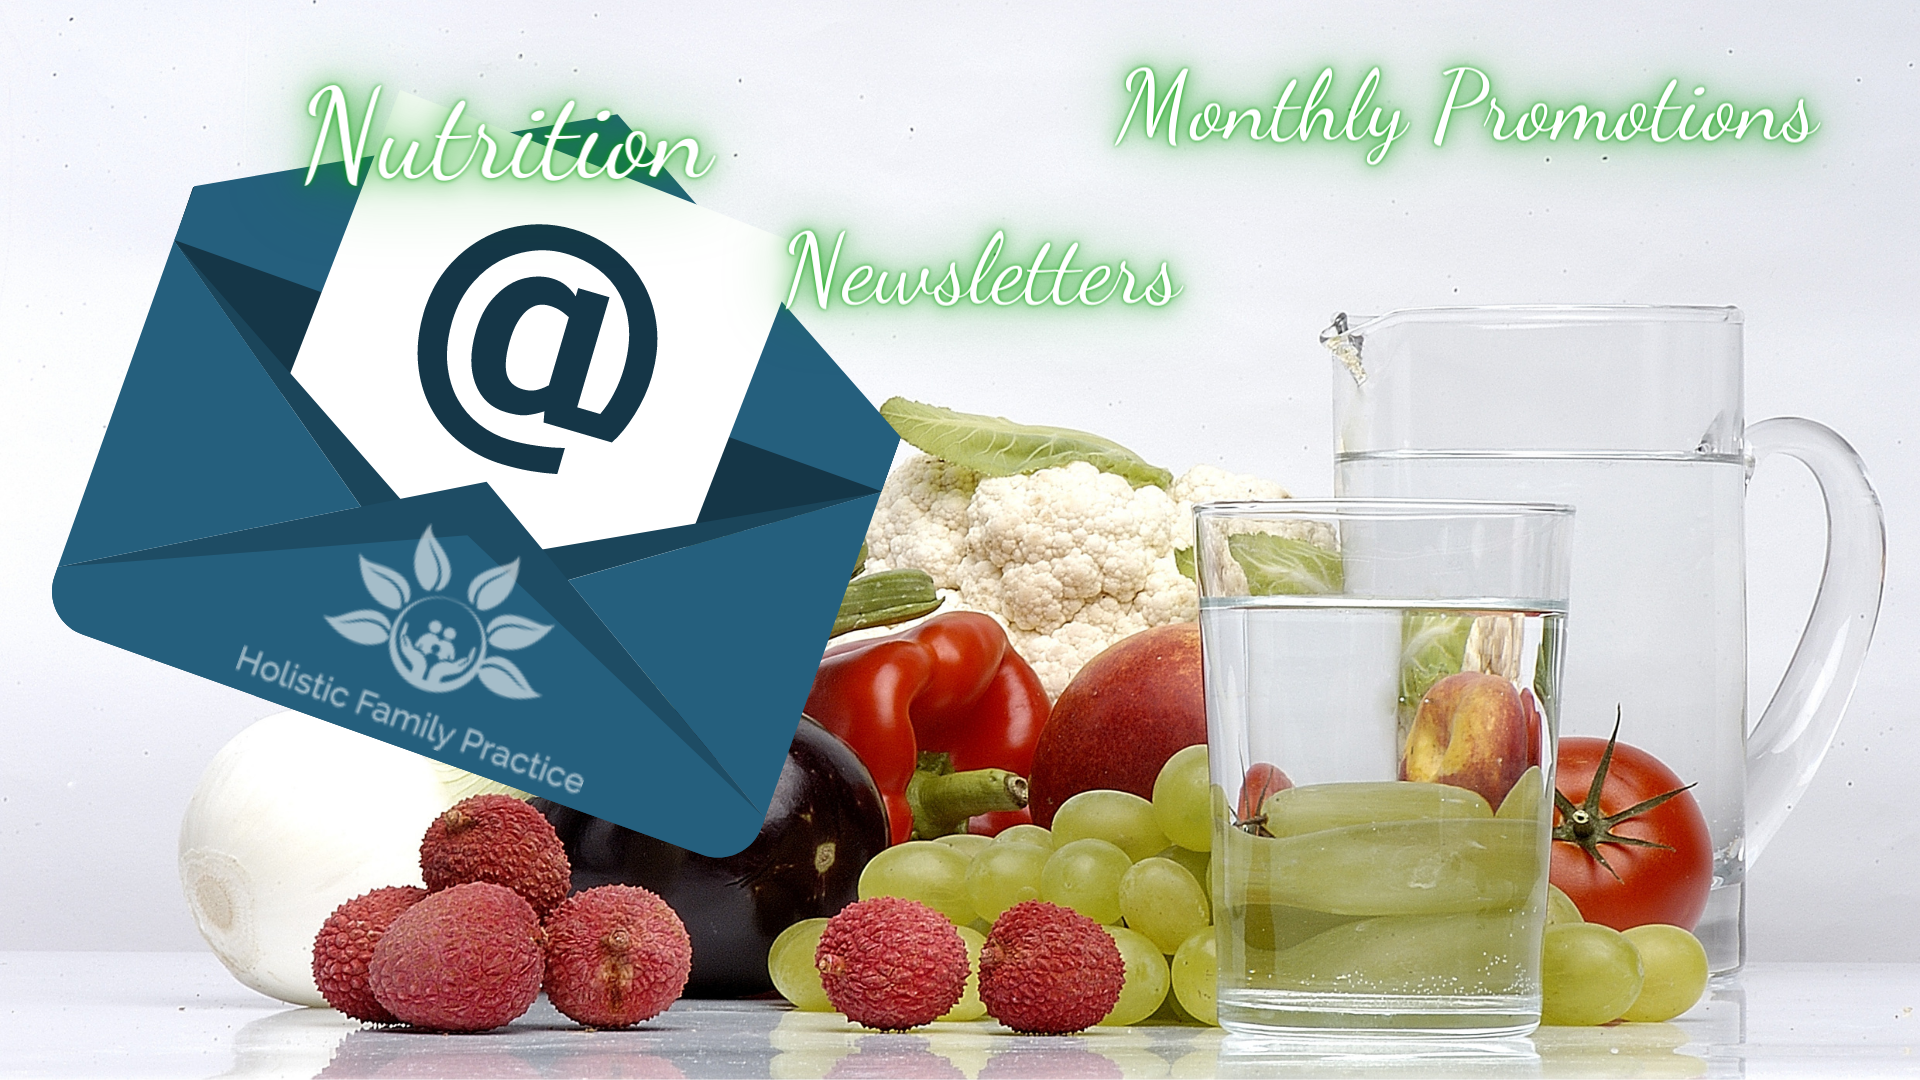 Sign up for our email list to receive end of fad nutrition, education, month newsletters, and service promotion for the month.